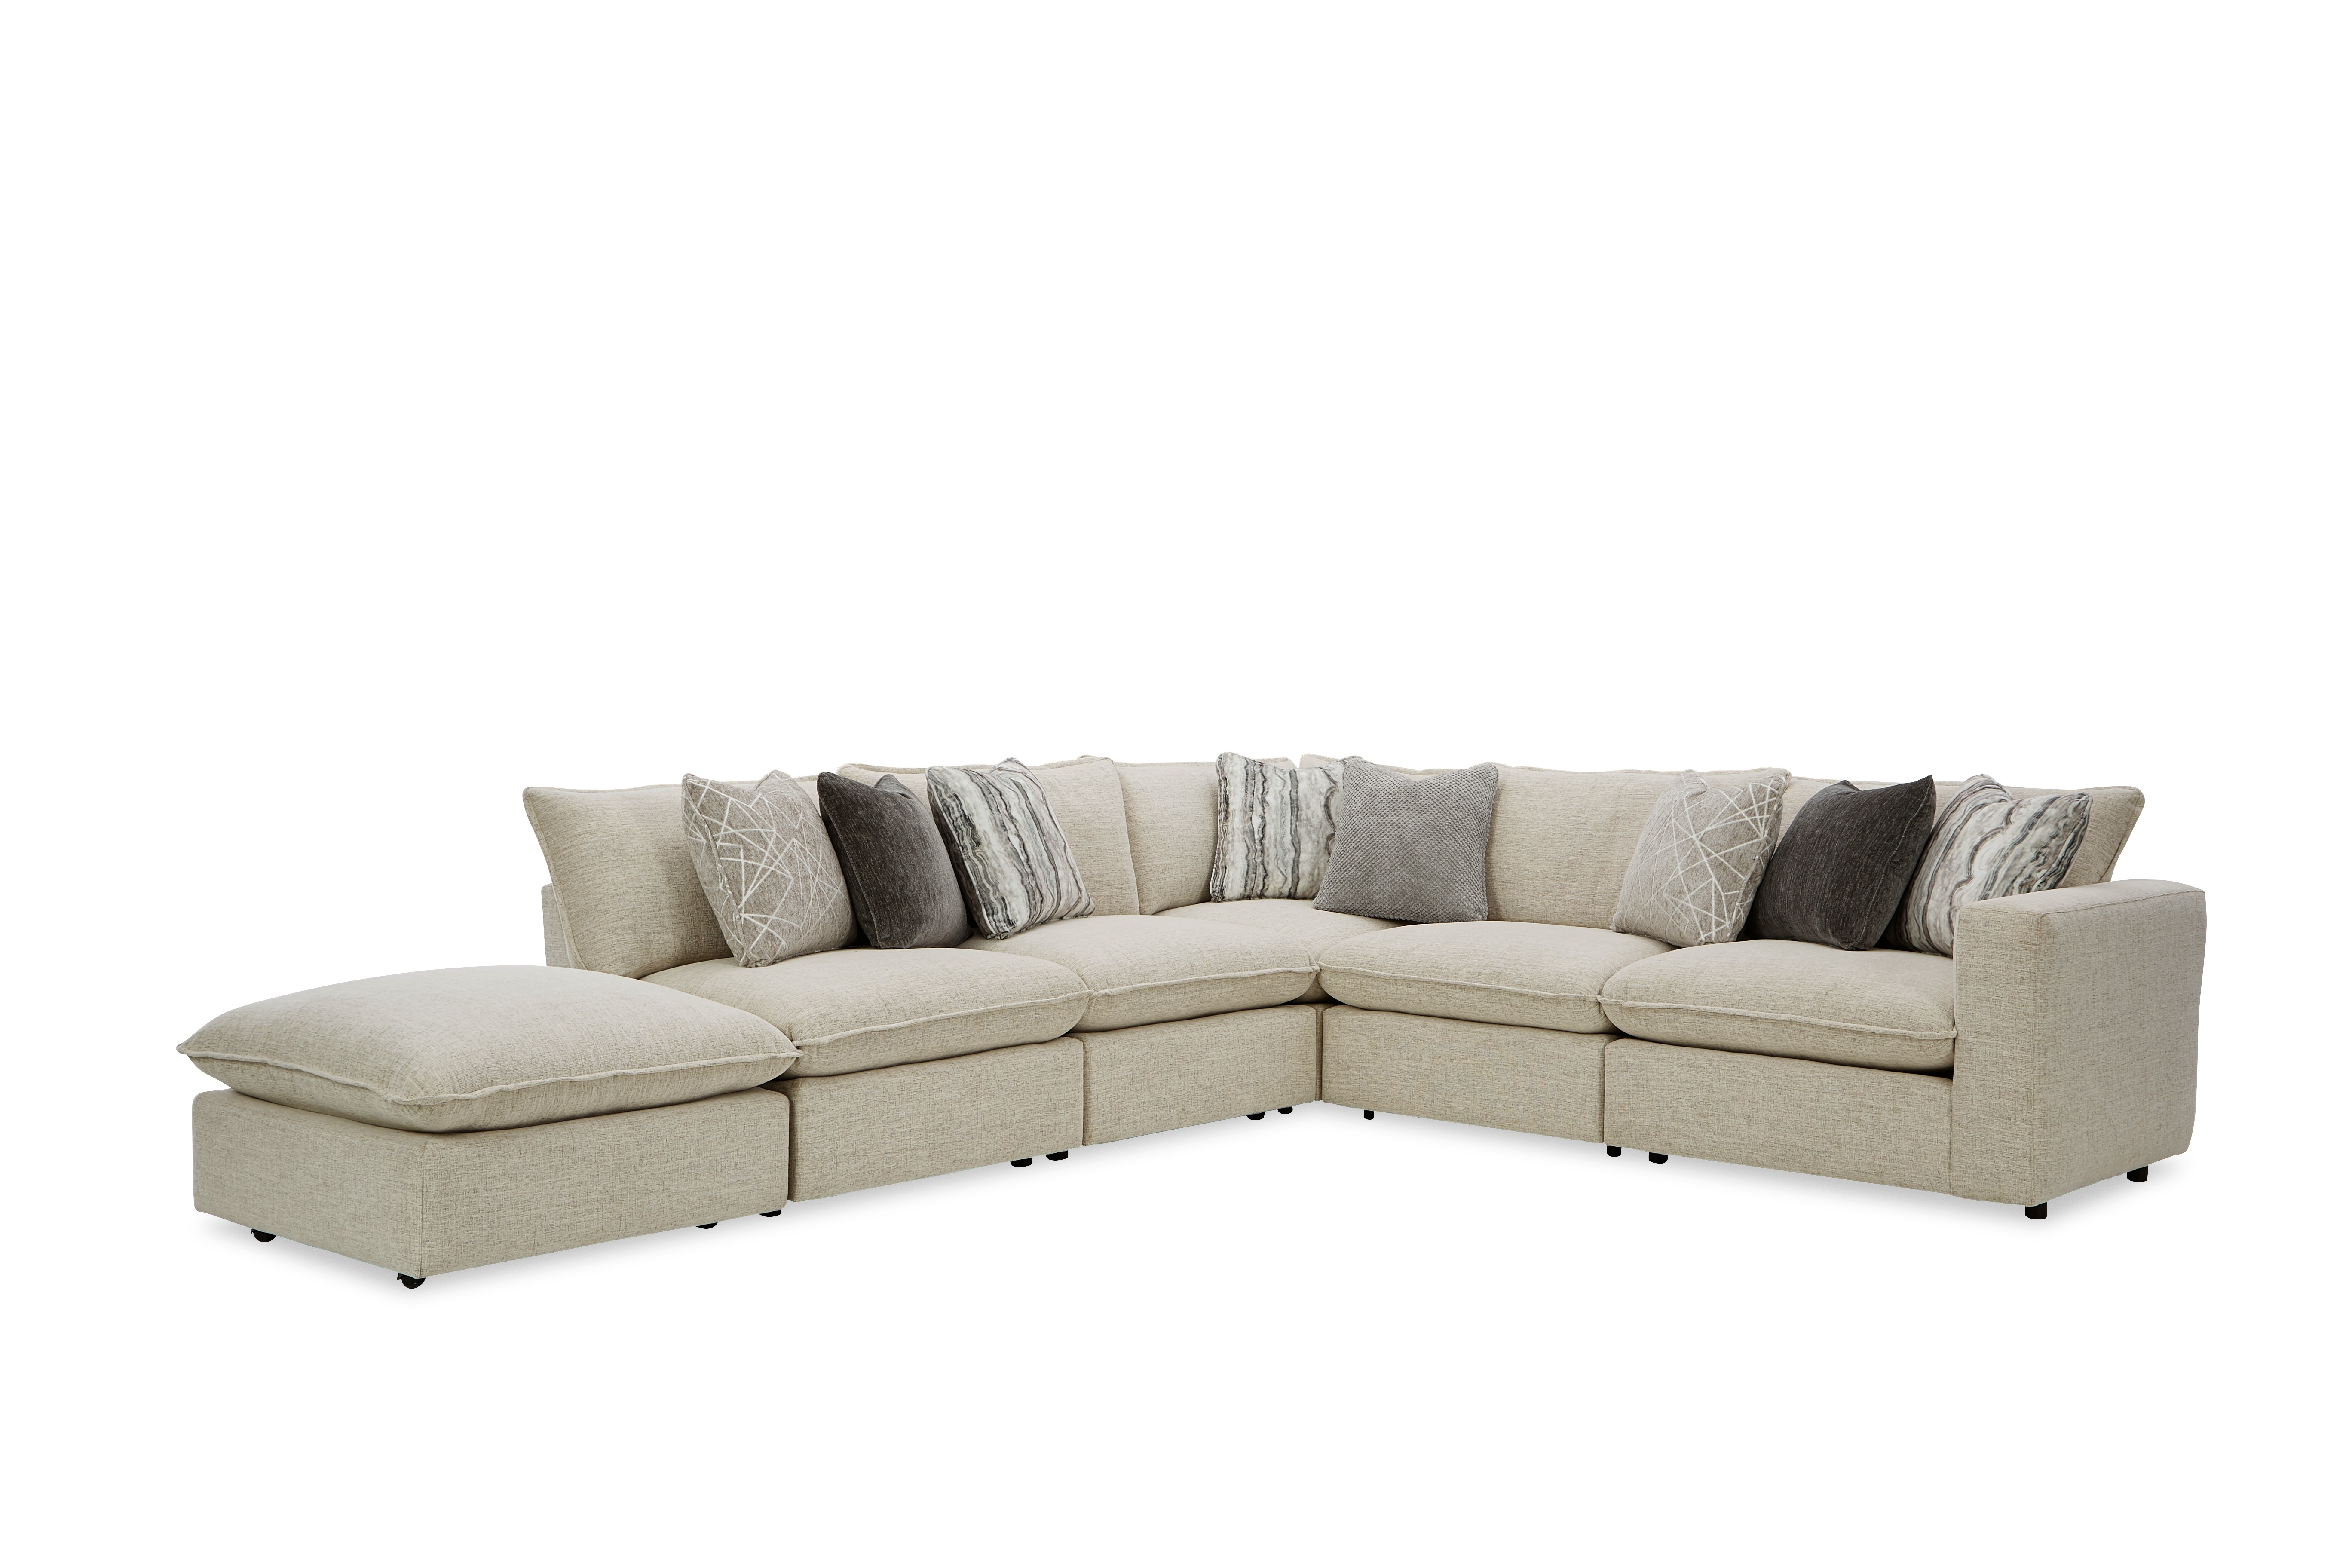 712741BD Sectional w/ One Bumper Ottoman & RAF Chair by Craftmaster at Home Collections Furniture